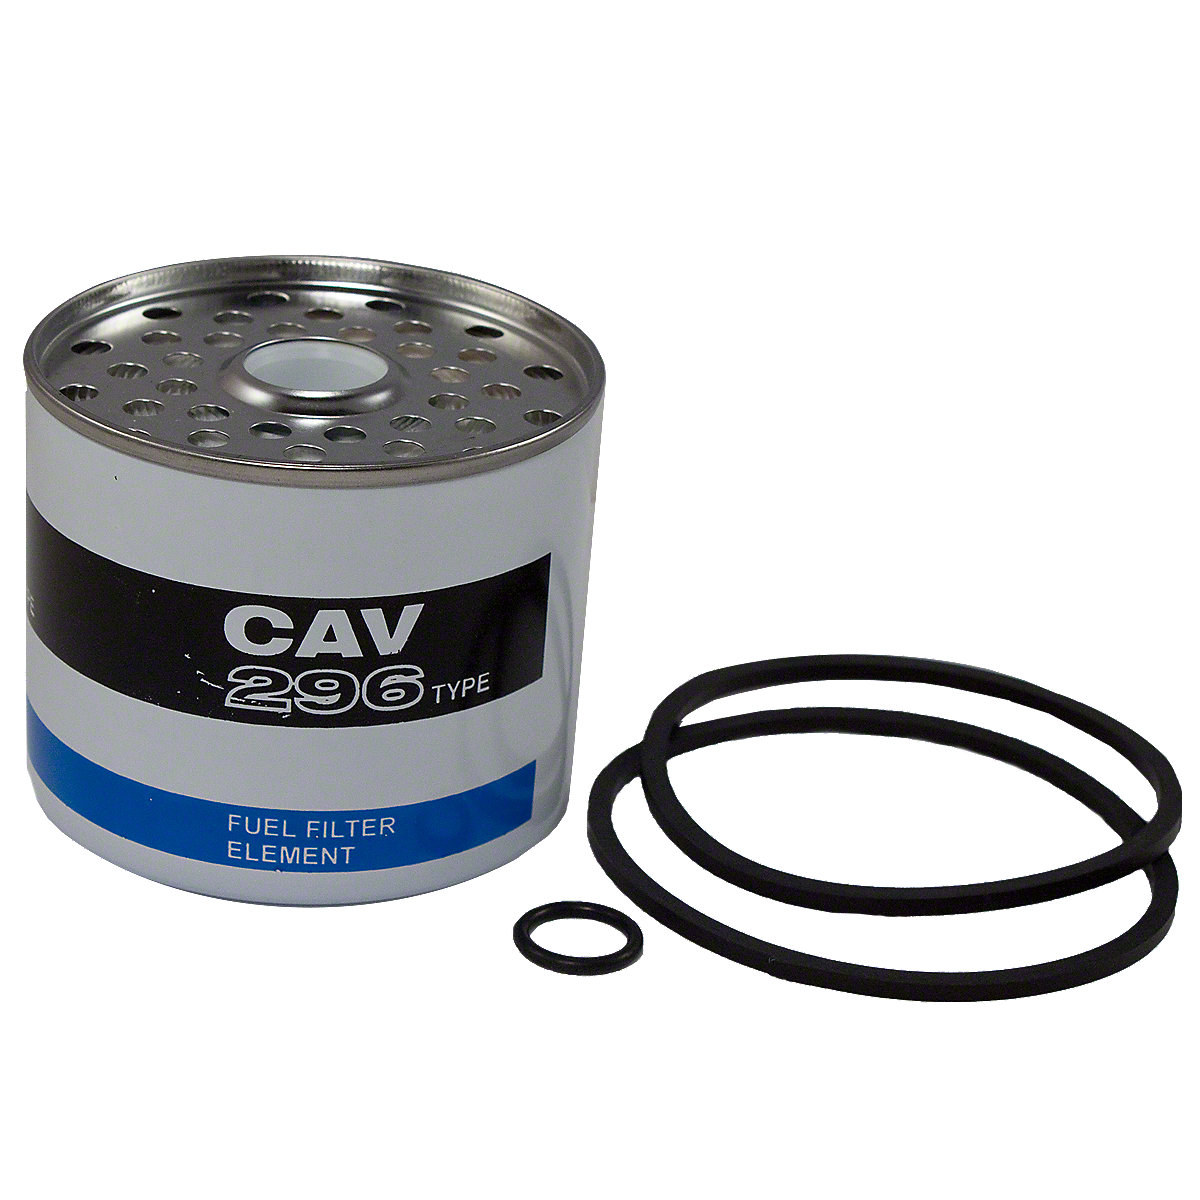 Fuel Filter Element With Seals For Cav and Simms Fuel Filters For Allis Chalmers: 160, 170, 175, 5040, 5045, 5050, 6040, 6140.